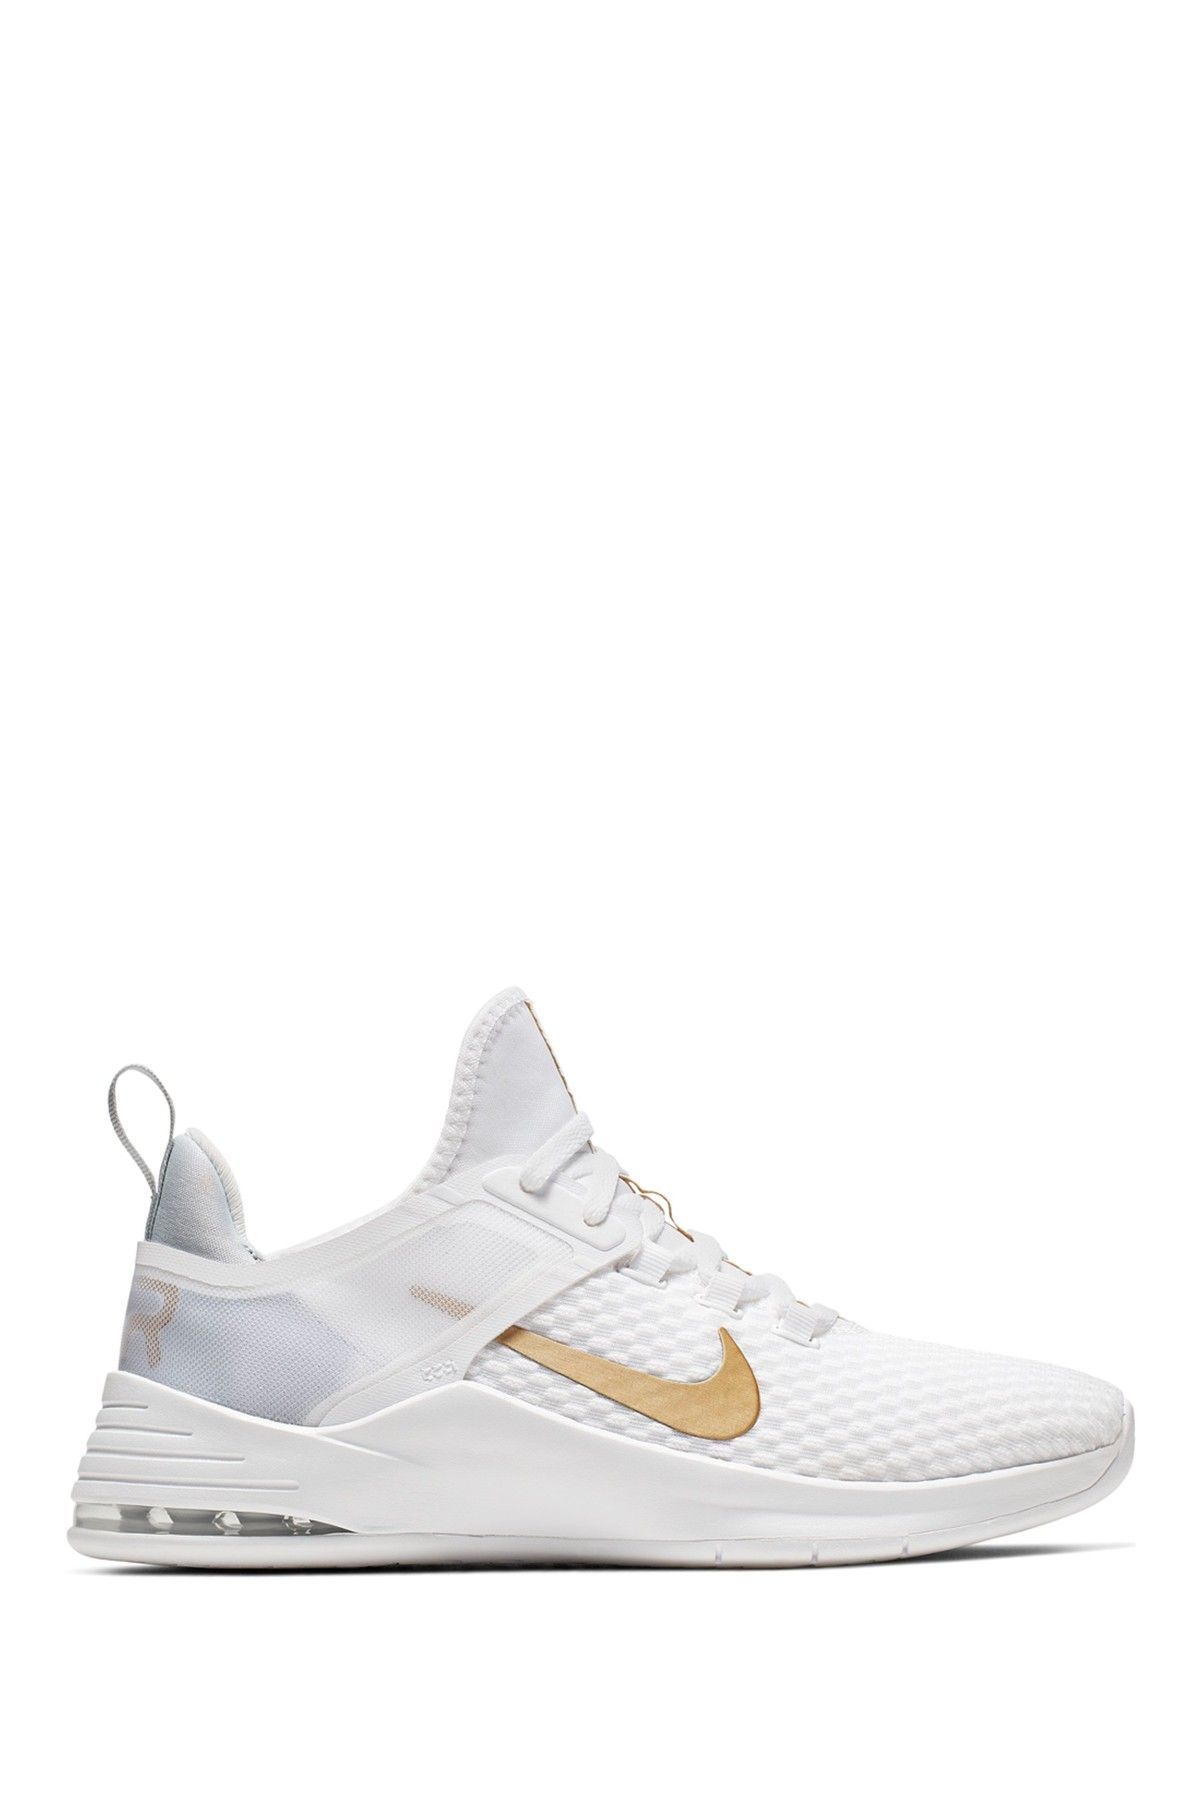 Nike Air Max Bella Tr Training Sneaker Nordstrom Rack Nike Volleyball Shoes Nike Air Max Sneakers